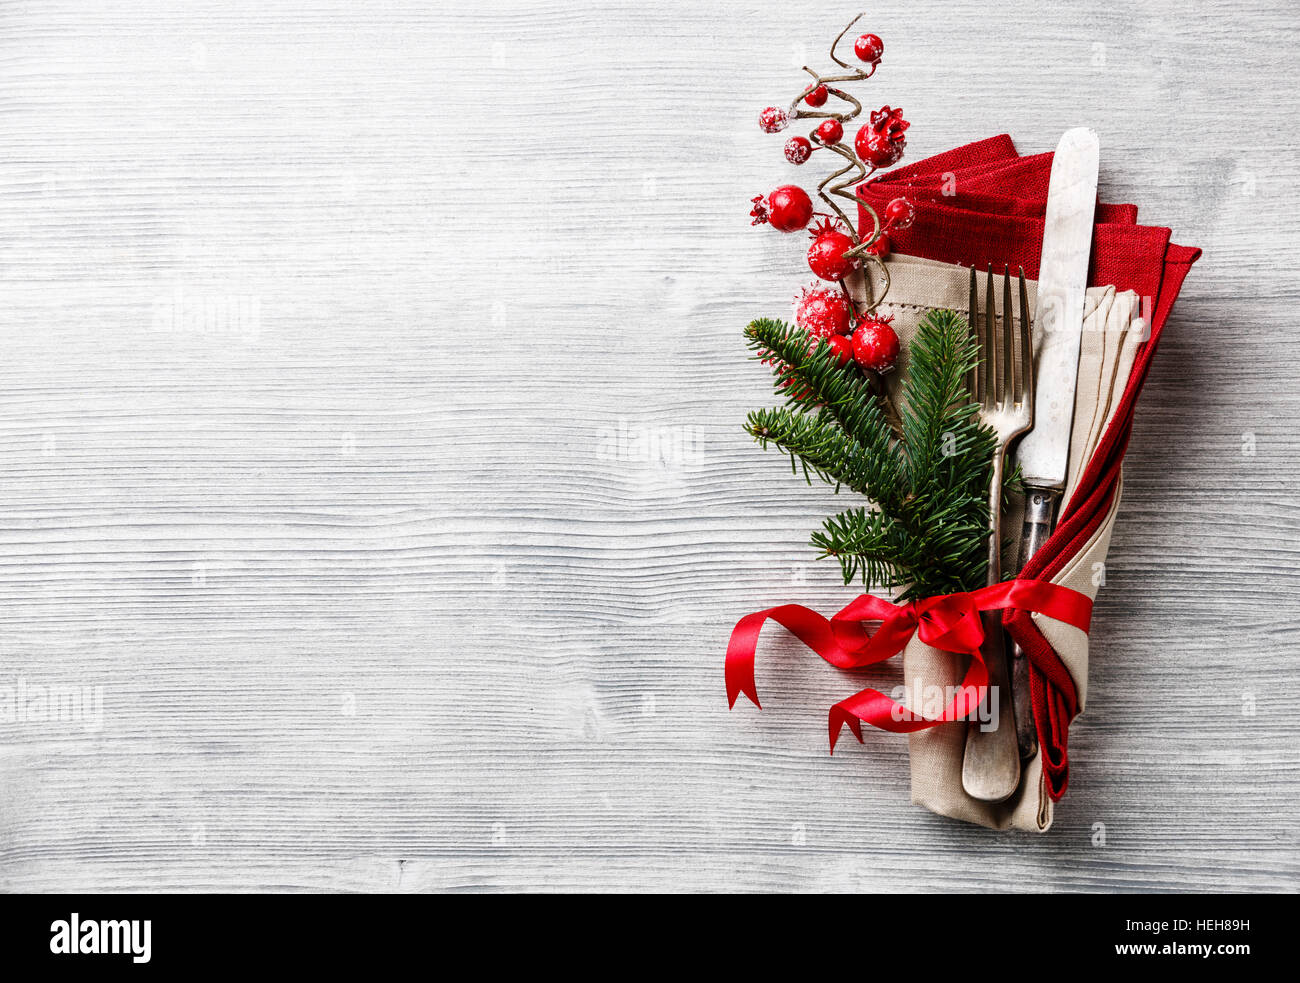 Table fork and knife set with napkin, christmas fir branch, red berries and ribbon on gray wooden background copy - Stock Image